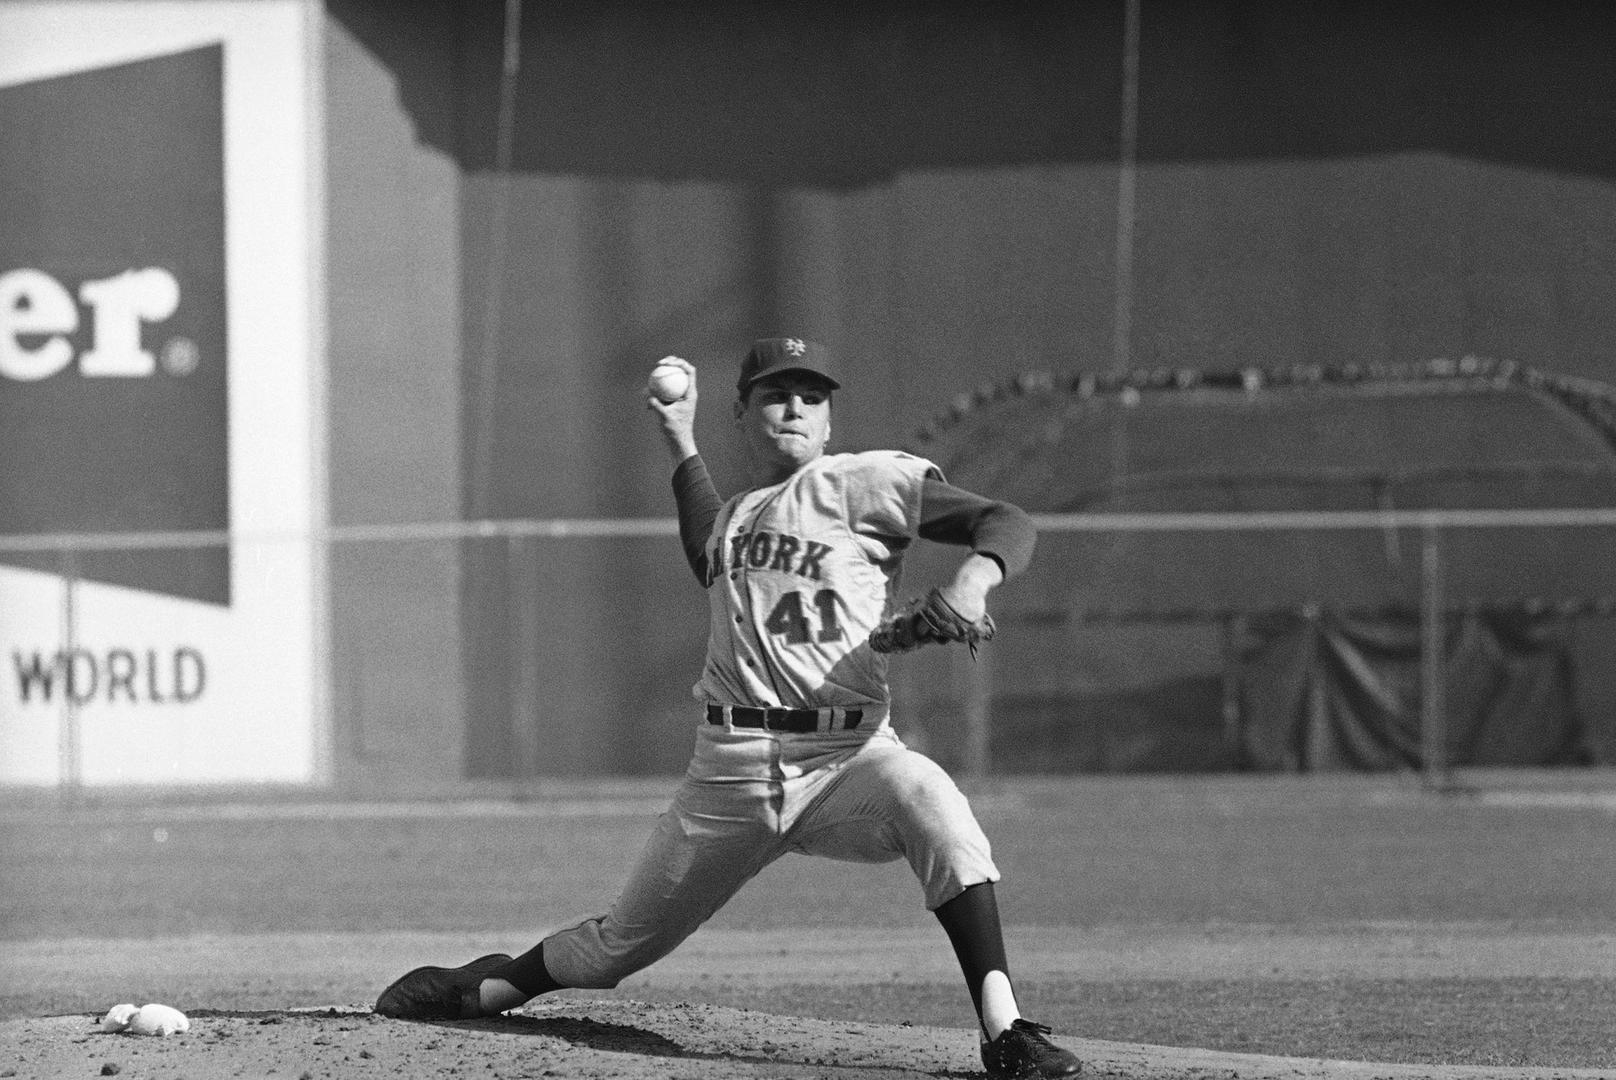 Mets plan to honor Tom Seaver with statue and Citi Field address change